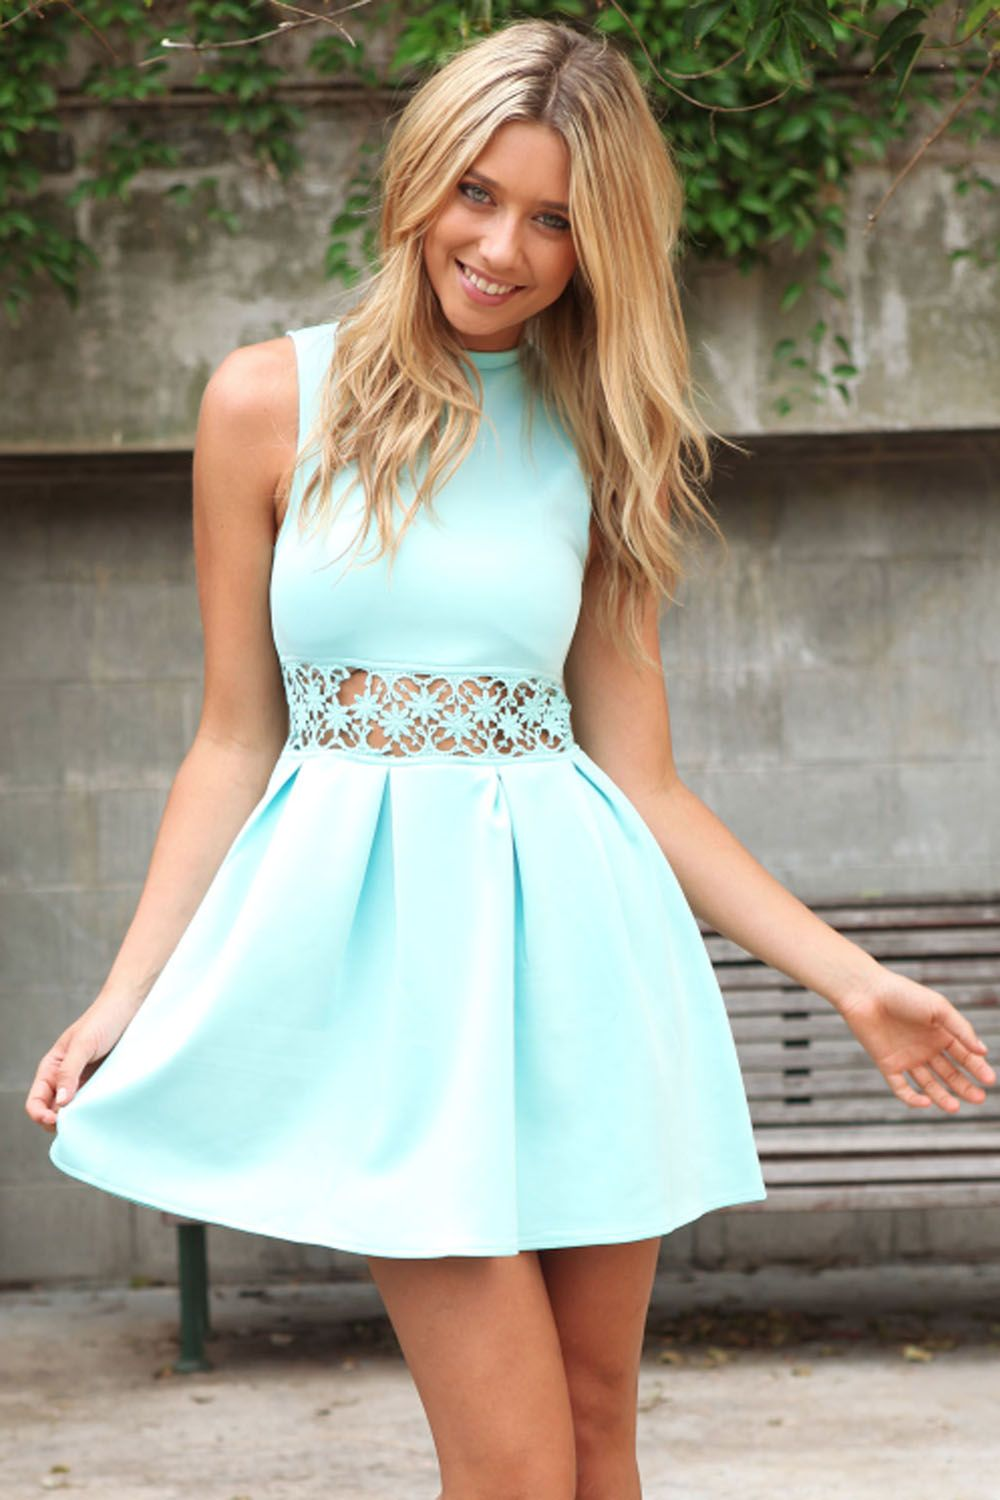 Double Duchess Mint Green Lace Dress | Cutout dress, Mint green ...